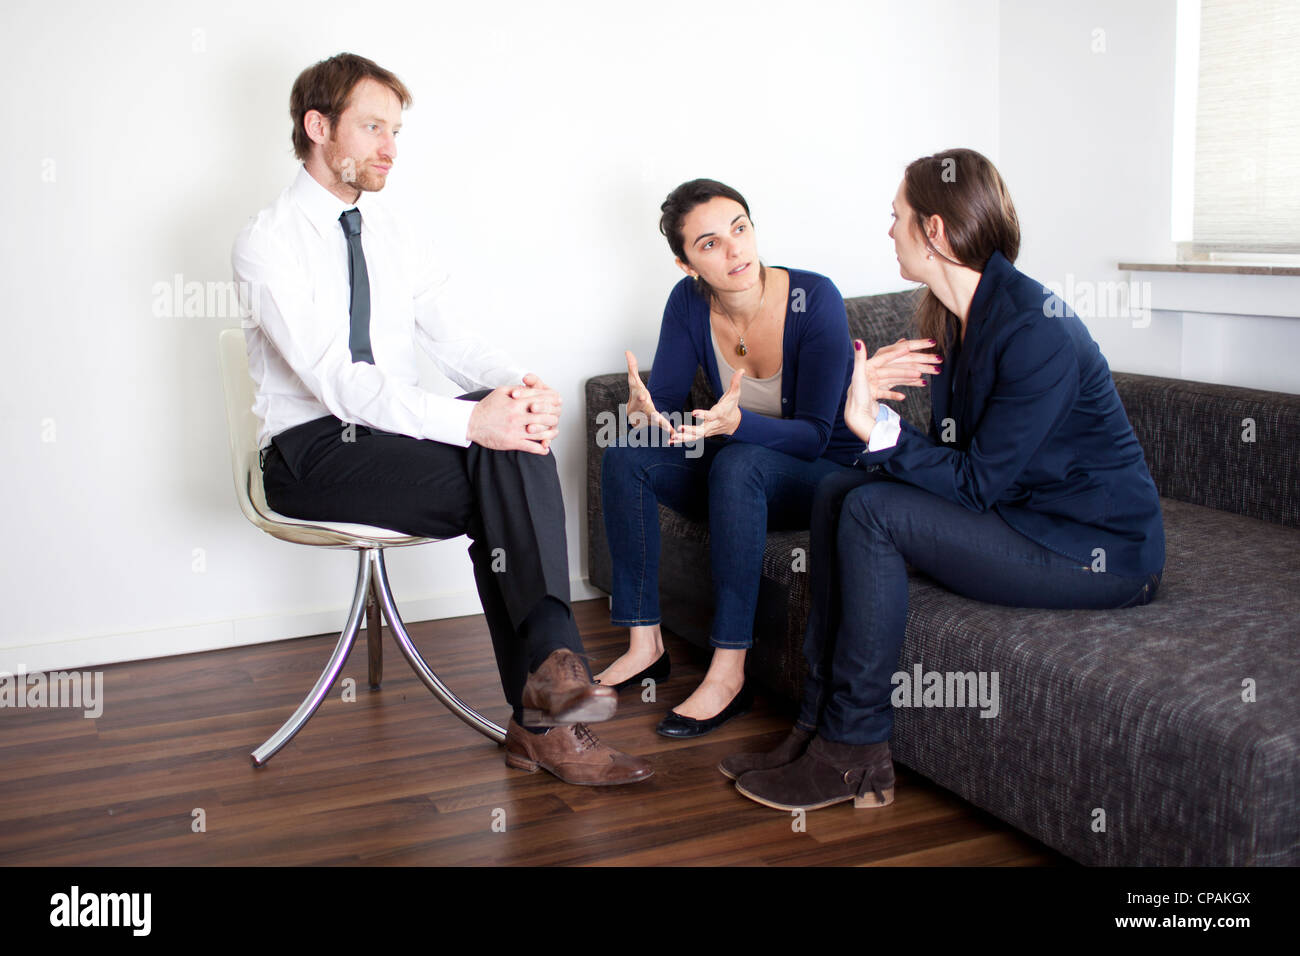 problem solving between business partners at therapy - Stock Image